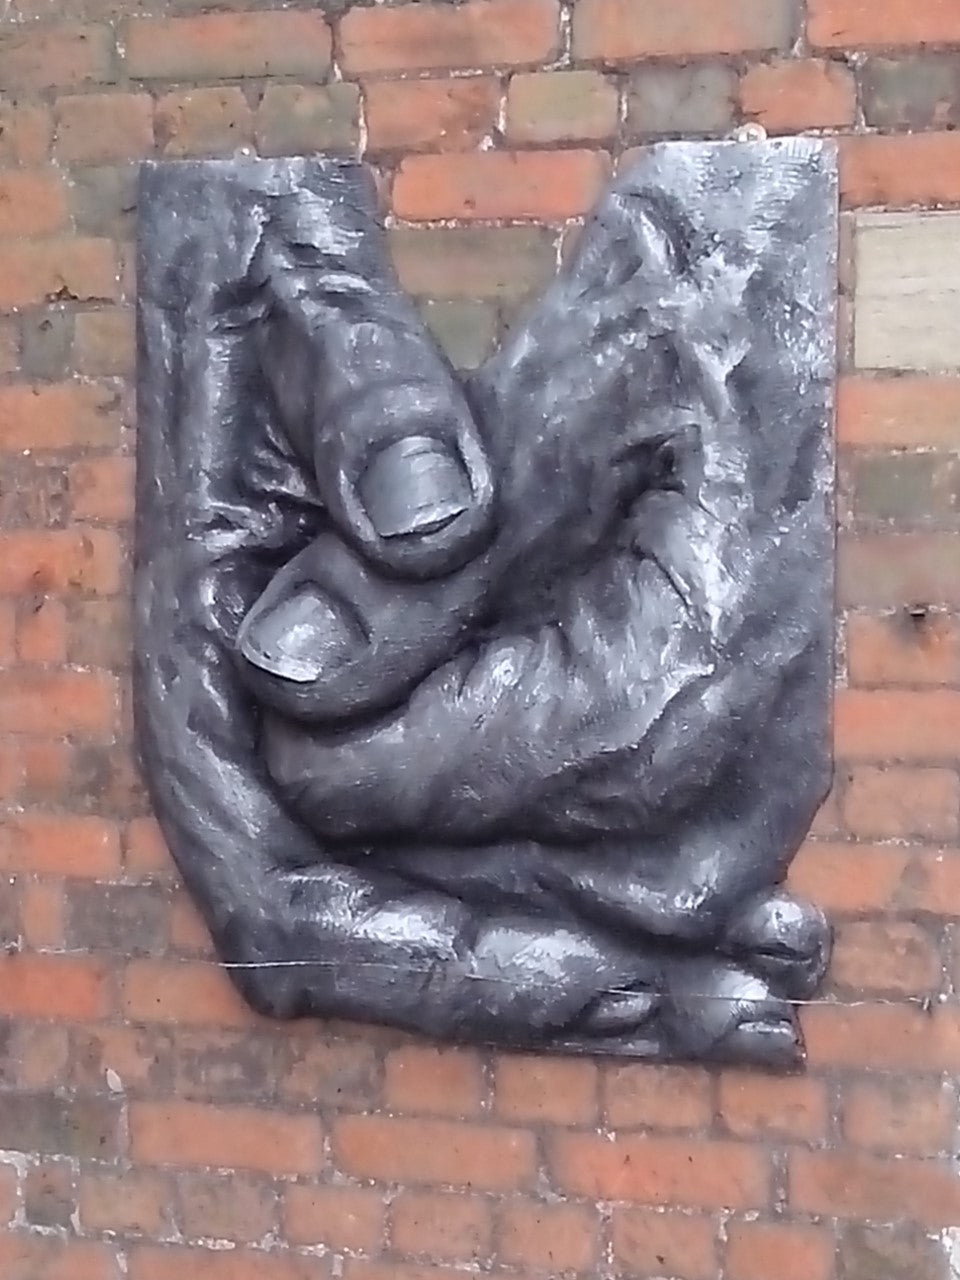 Hands sculpture for outdoor wall.